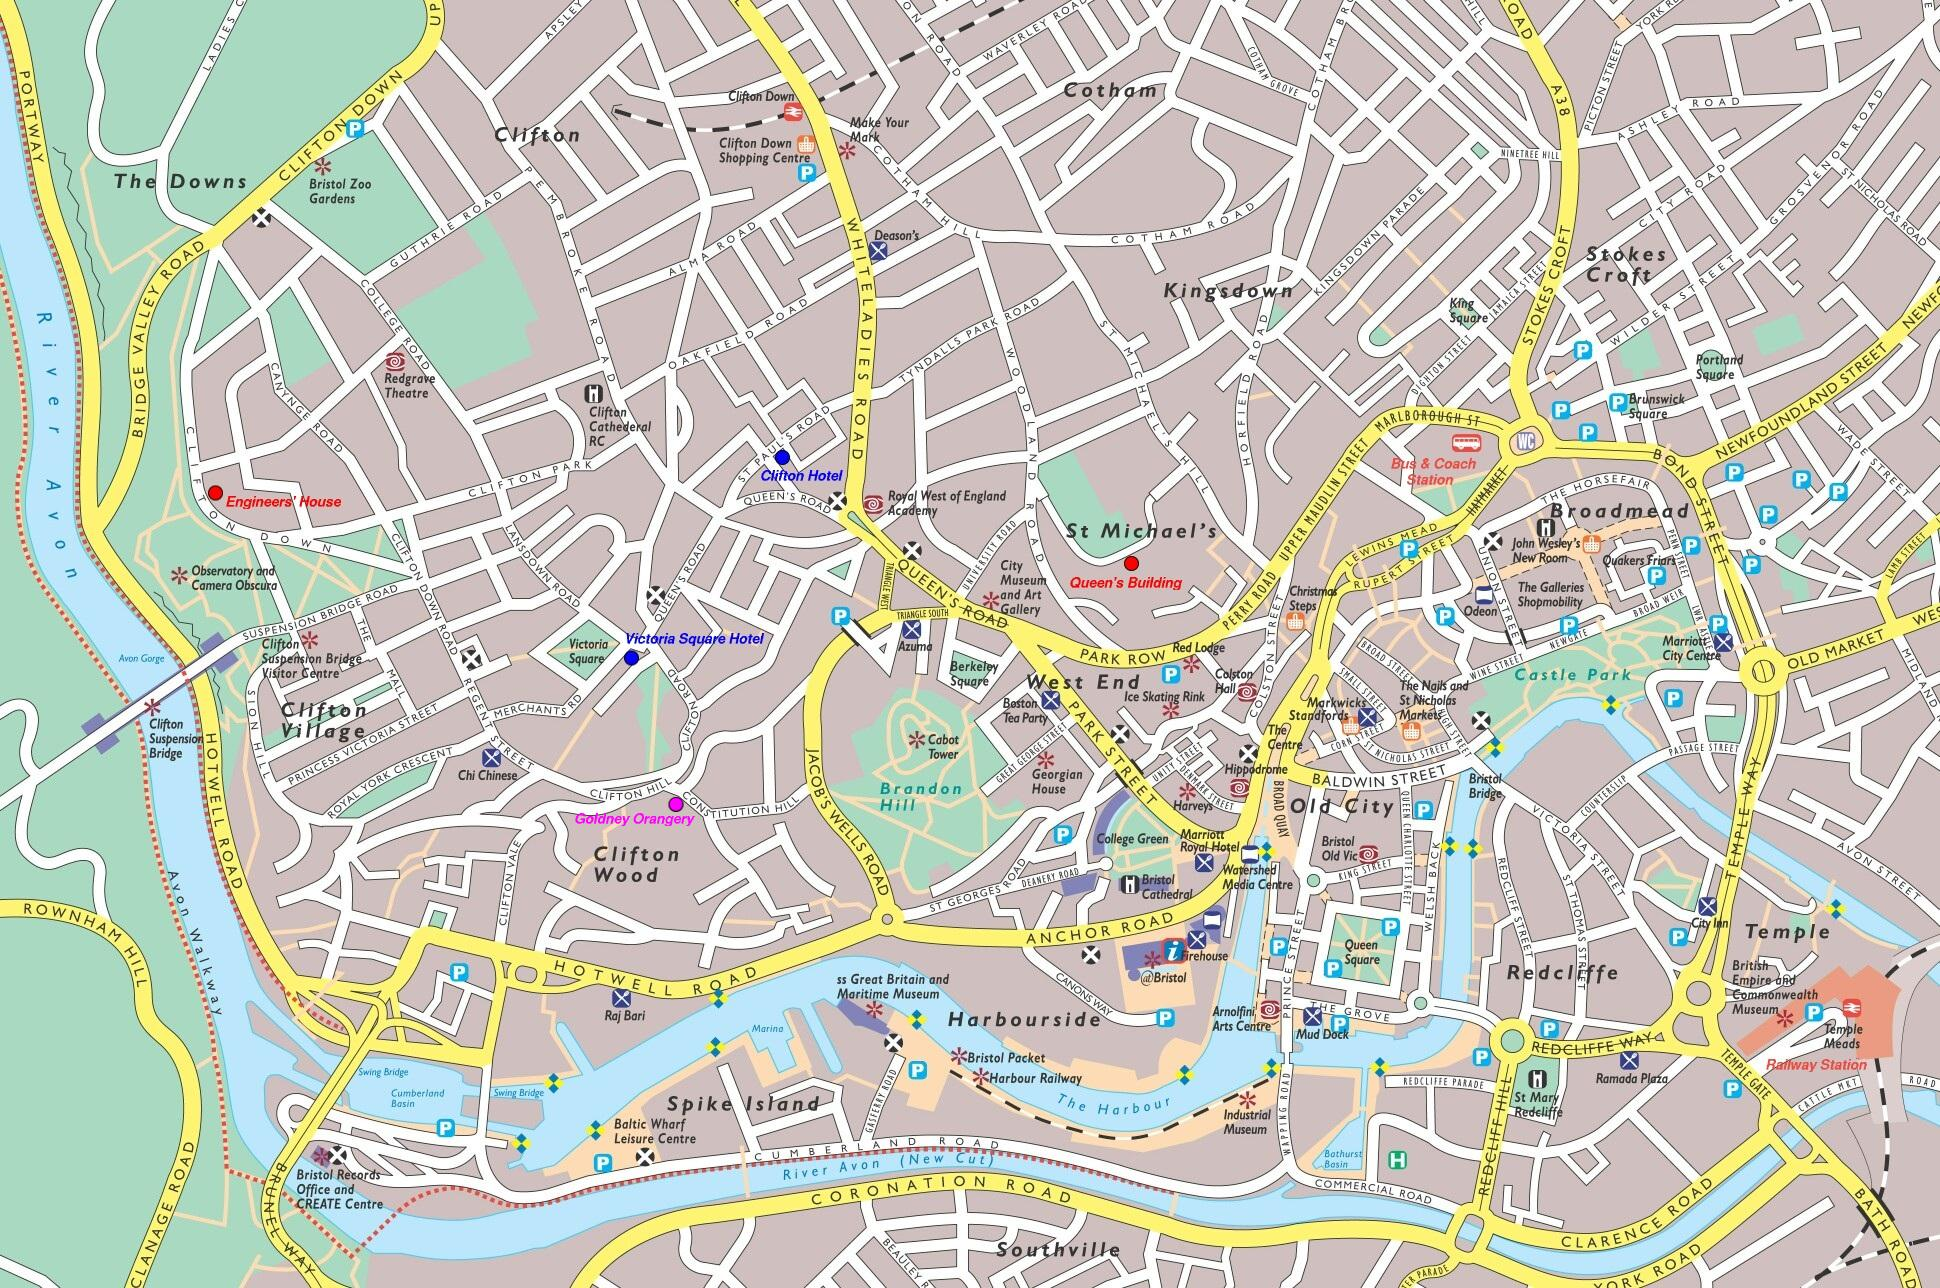 Bristol Tourist Map Bristol England mappery – Tourist Map of London England